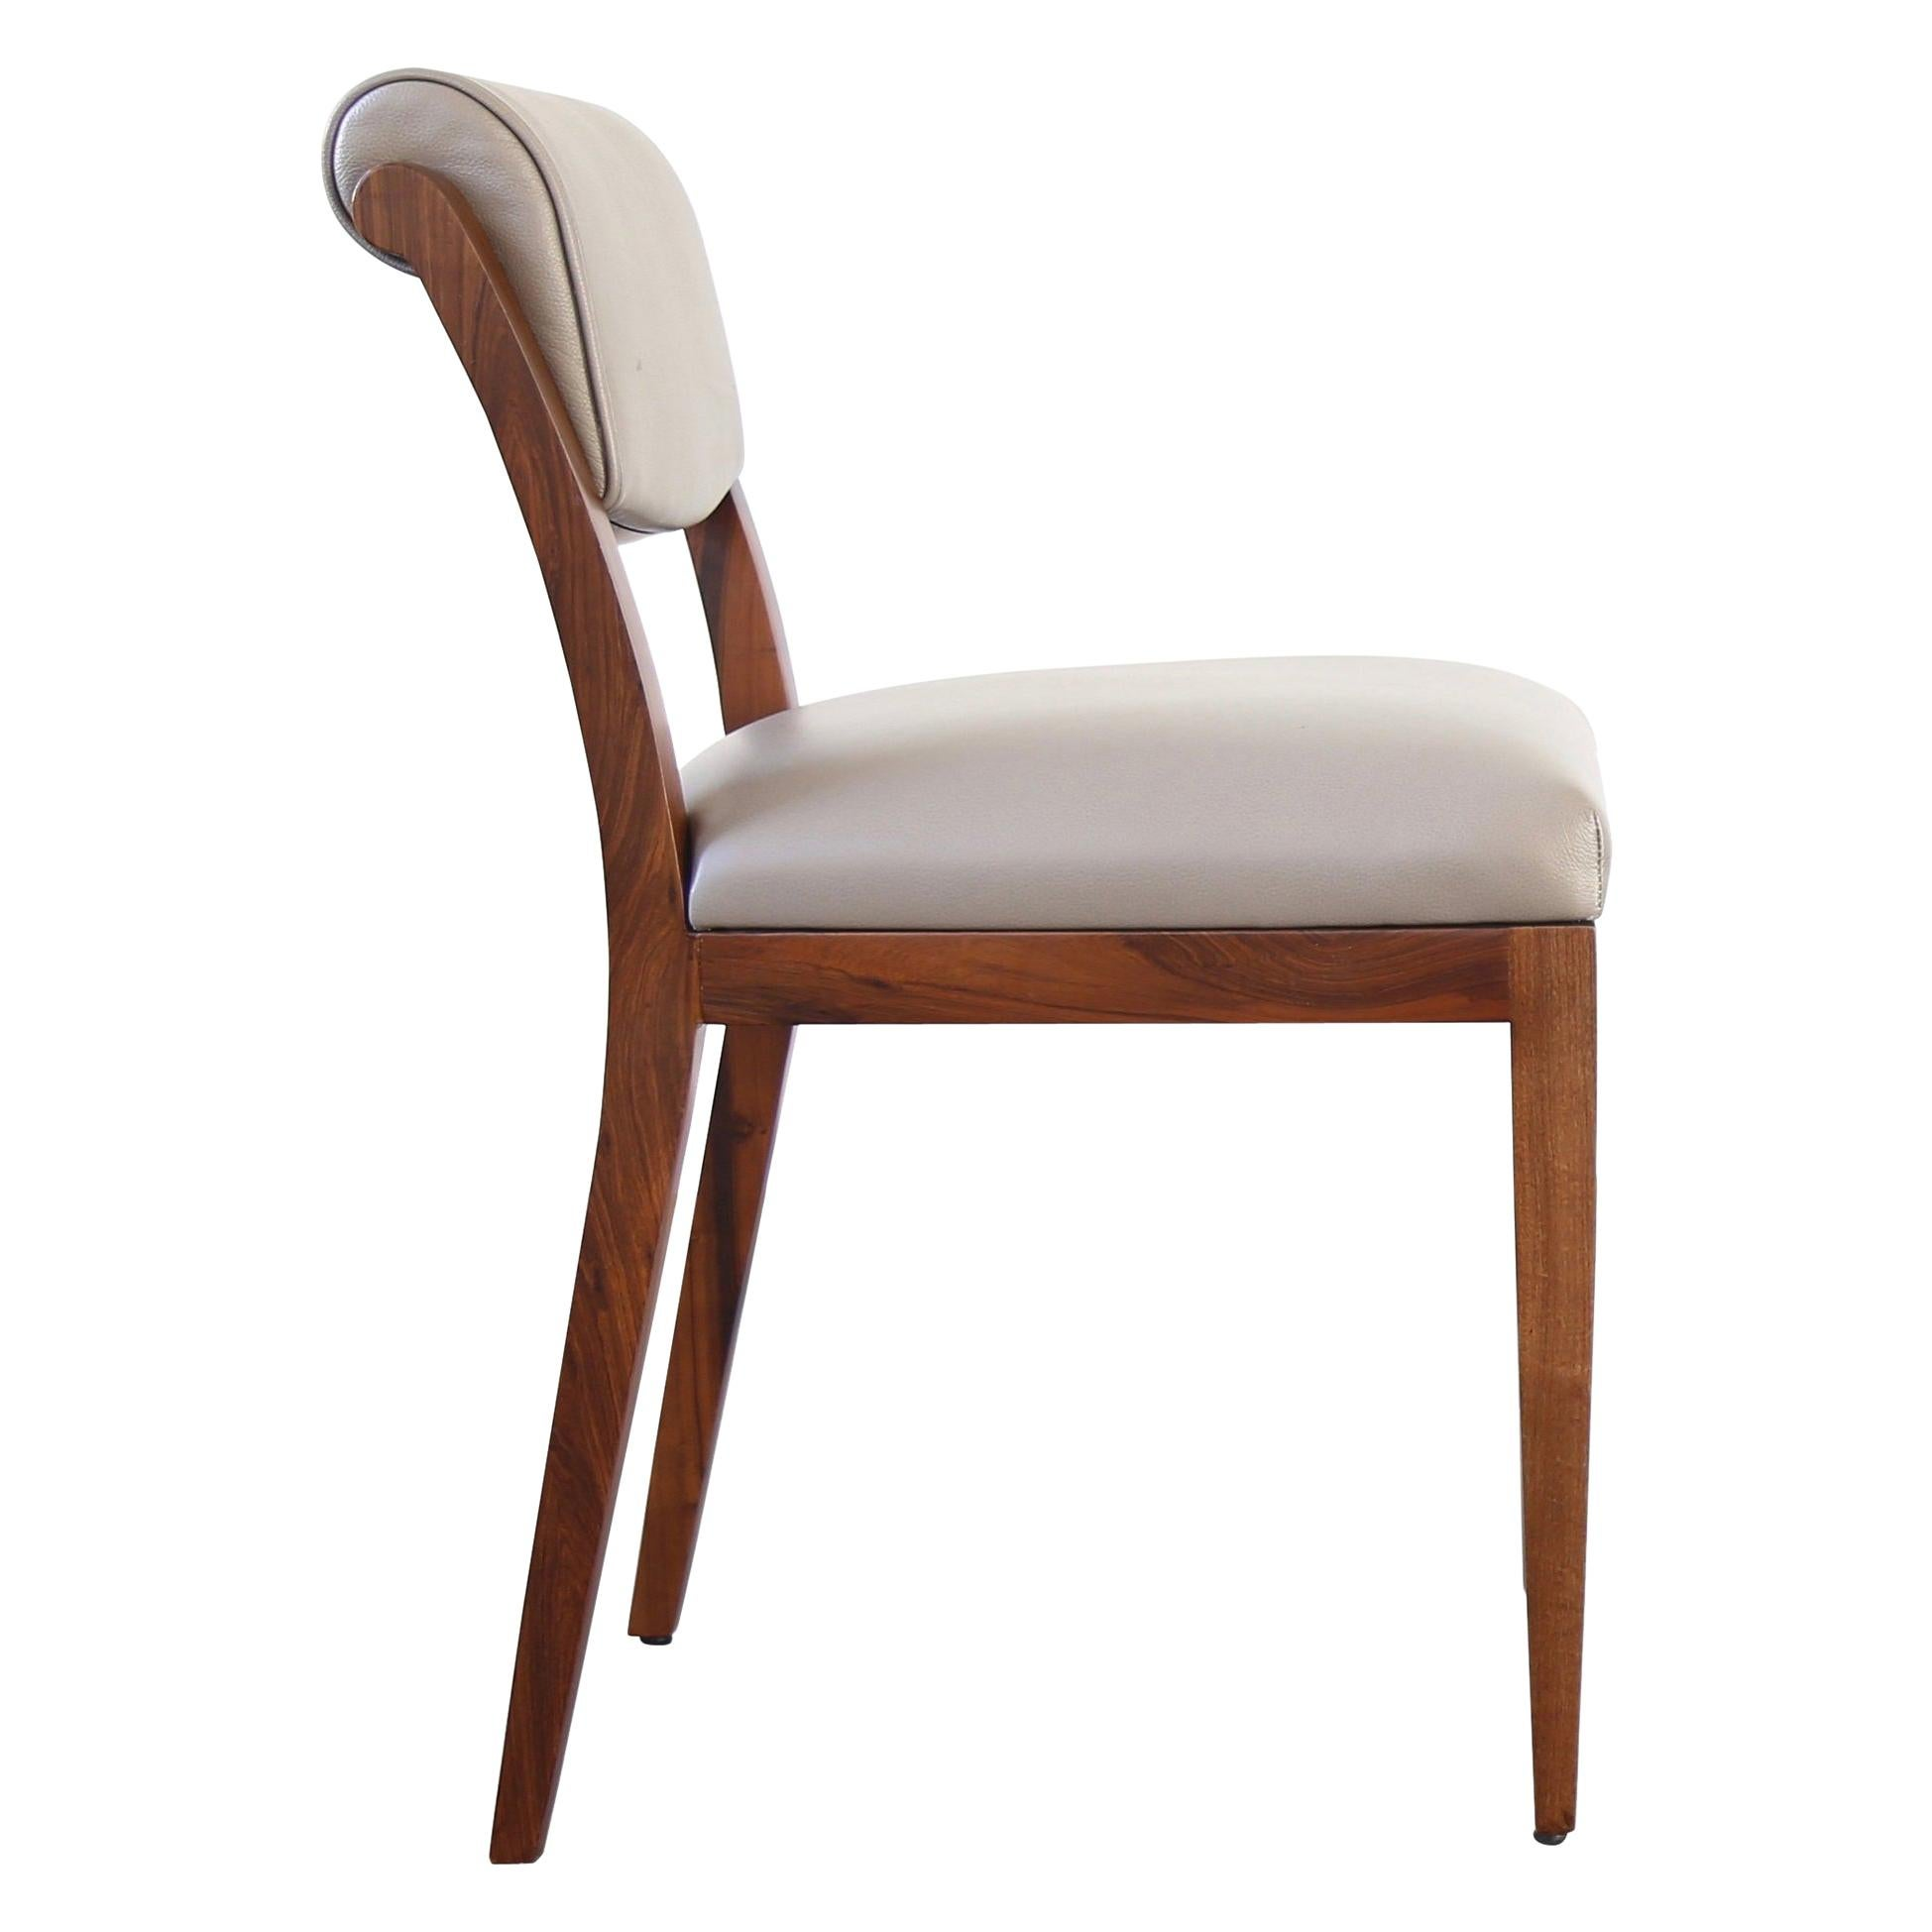 Gianni Contemporary Art Deco Style Leather Dining Chair from Costantini